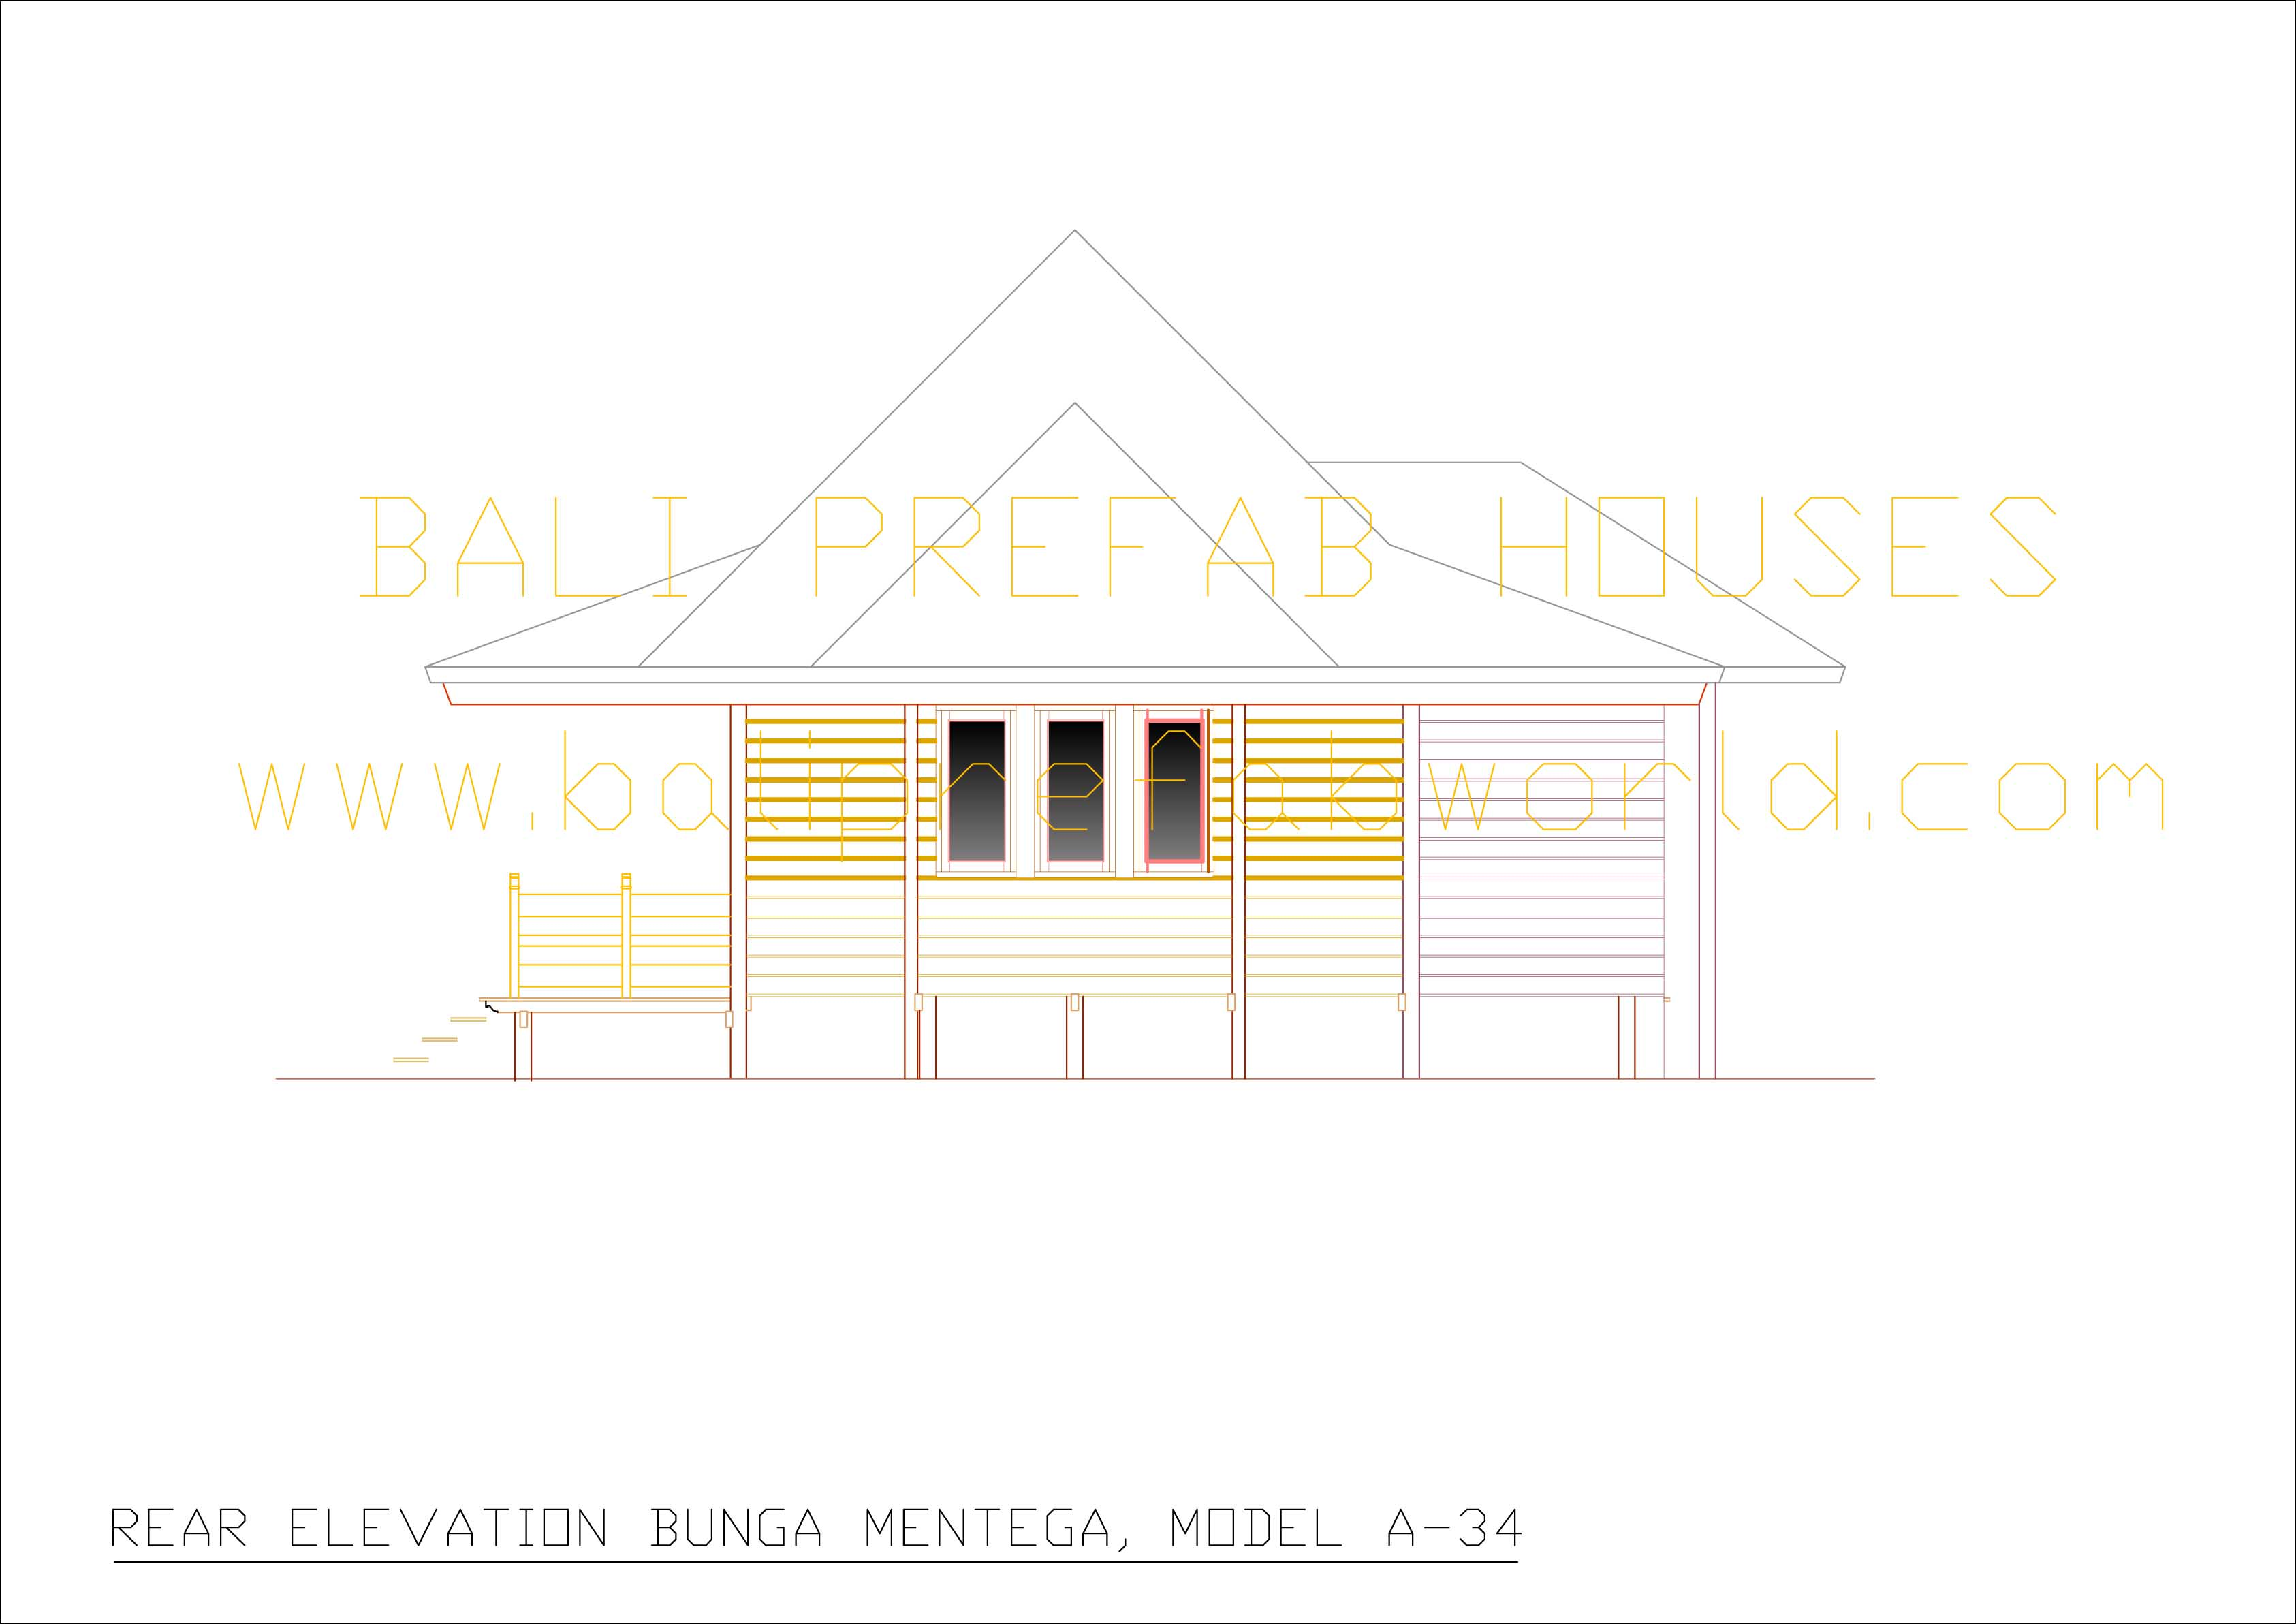 Bunga-mentega rear elevation